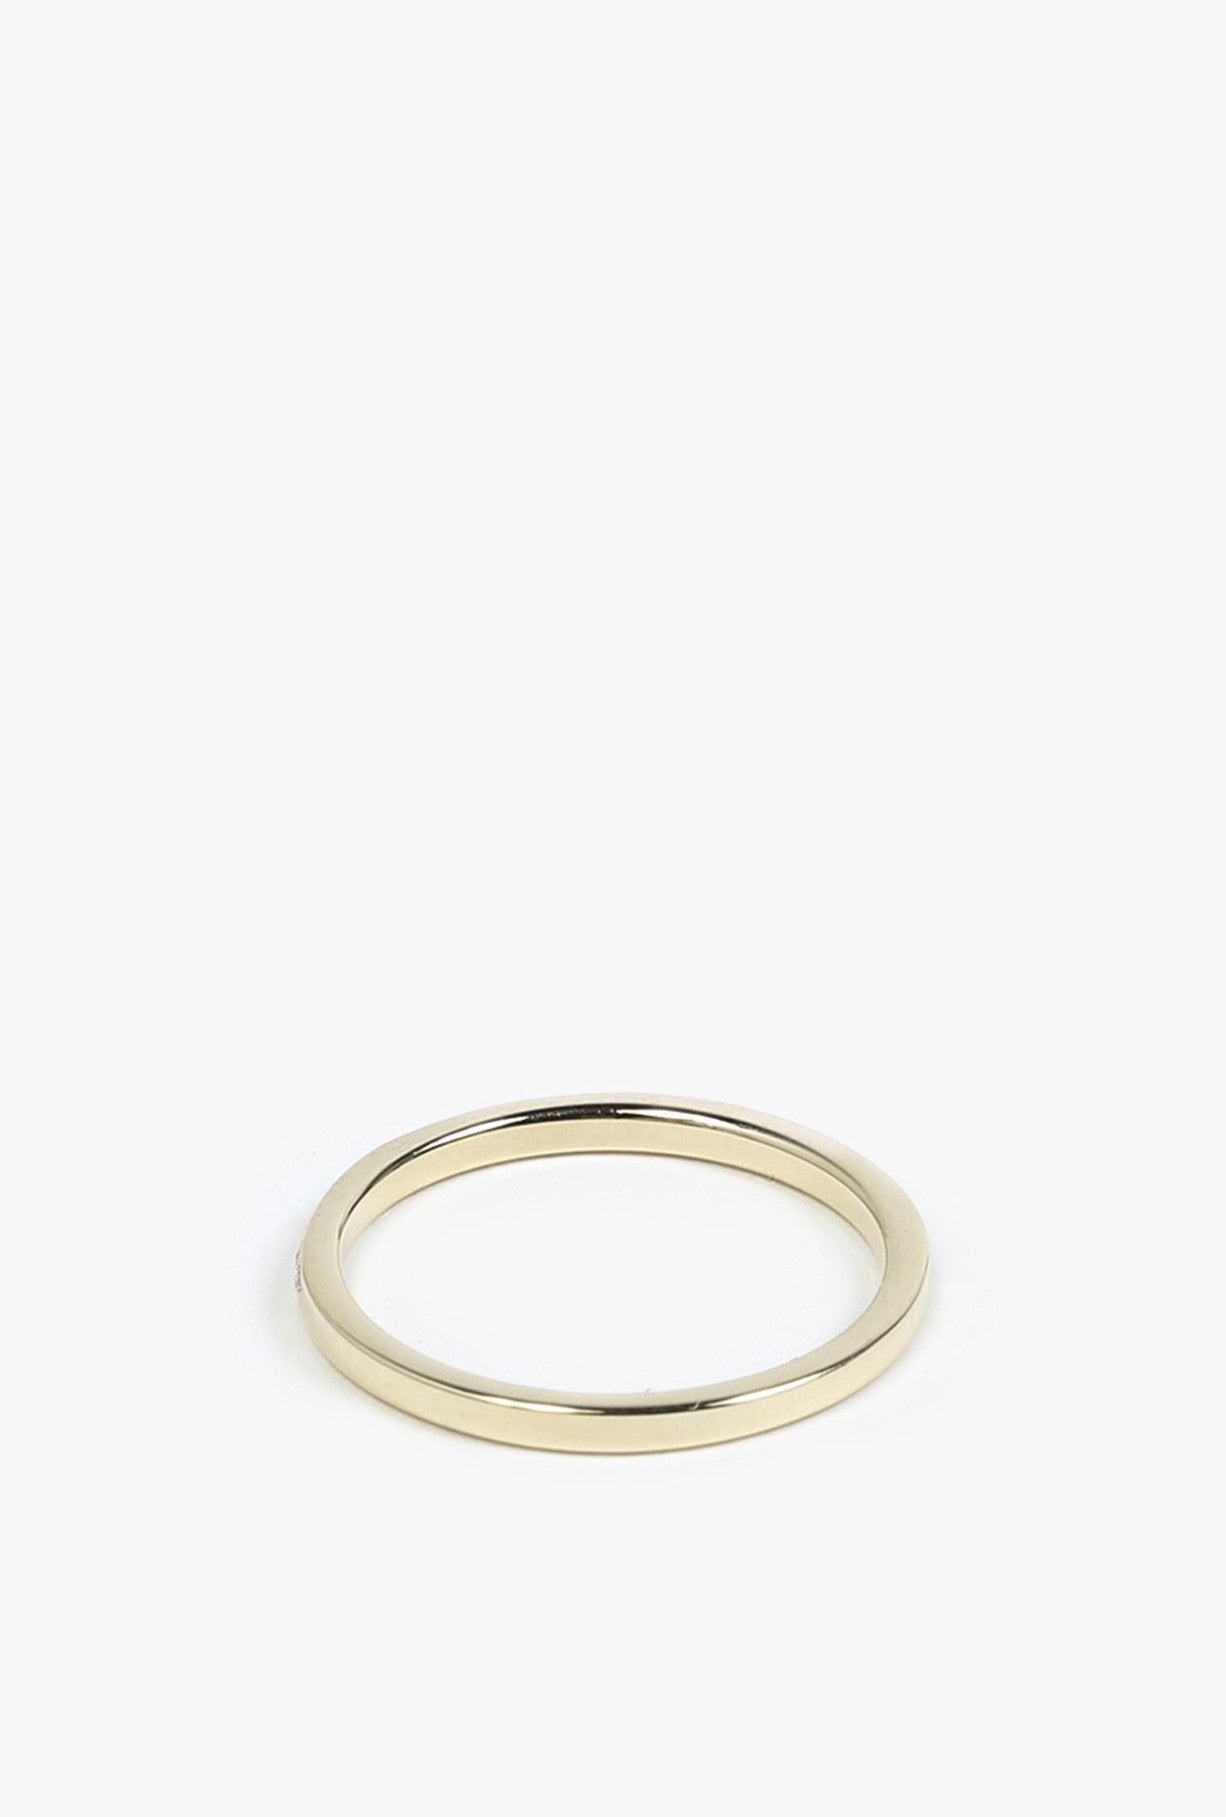 Eile Ring